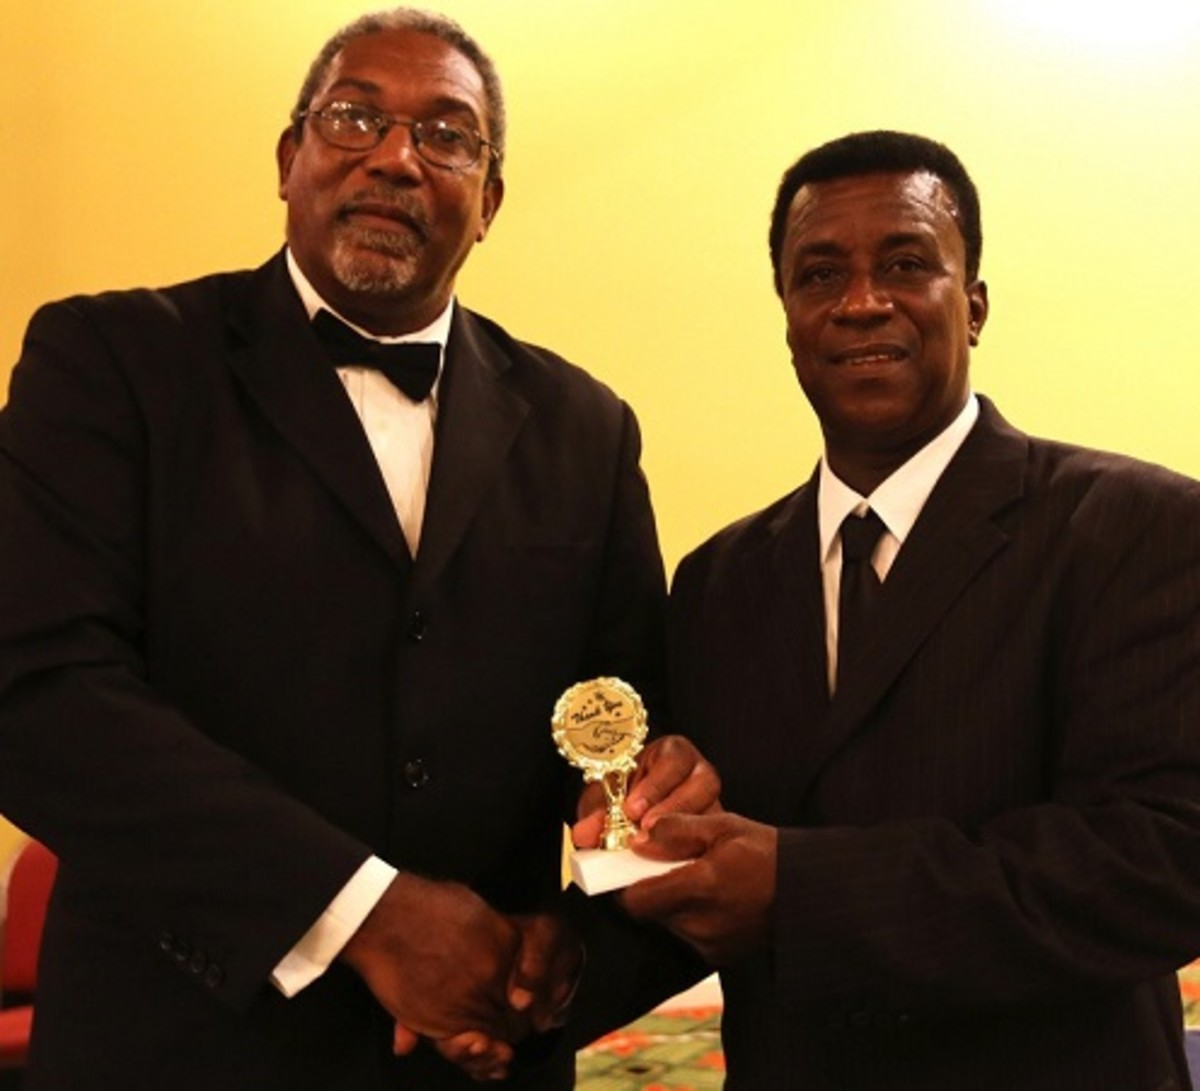 Former Leeward Islands Cricket Association (LICA) President and West Indies Cricket Board (WICB) Director Mr. Gregory Shillingford presents an award to Willett in June, 2014.  Willett is on the right.  – (WICB Media photo)